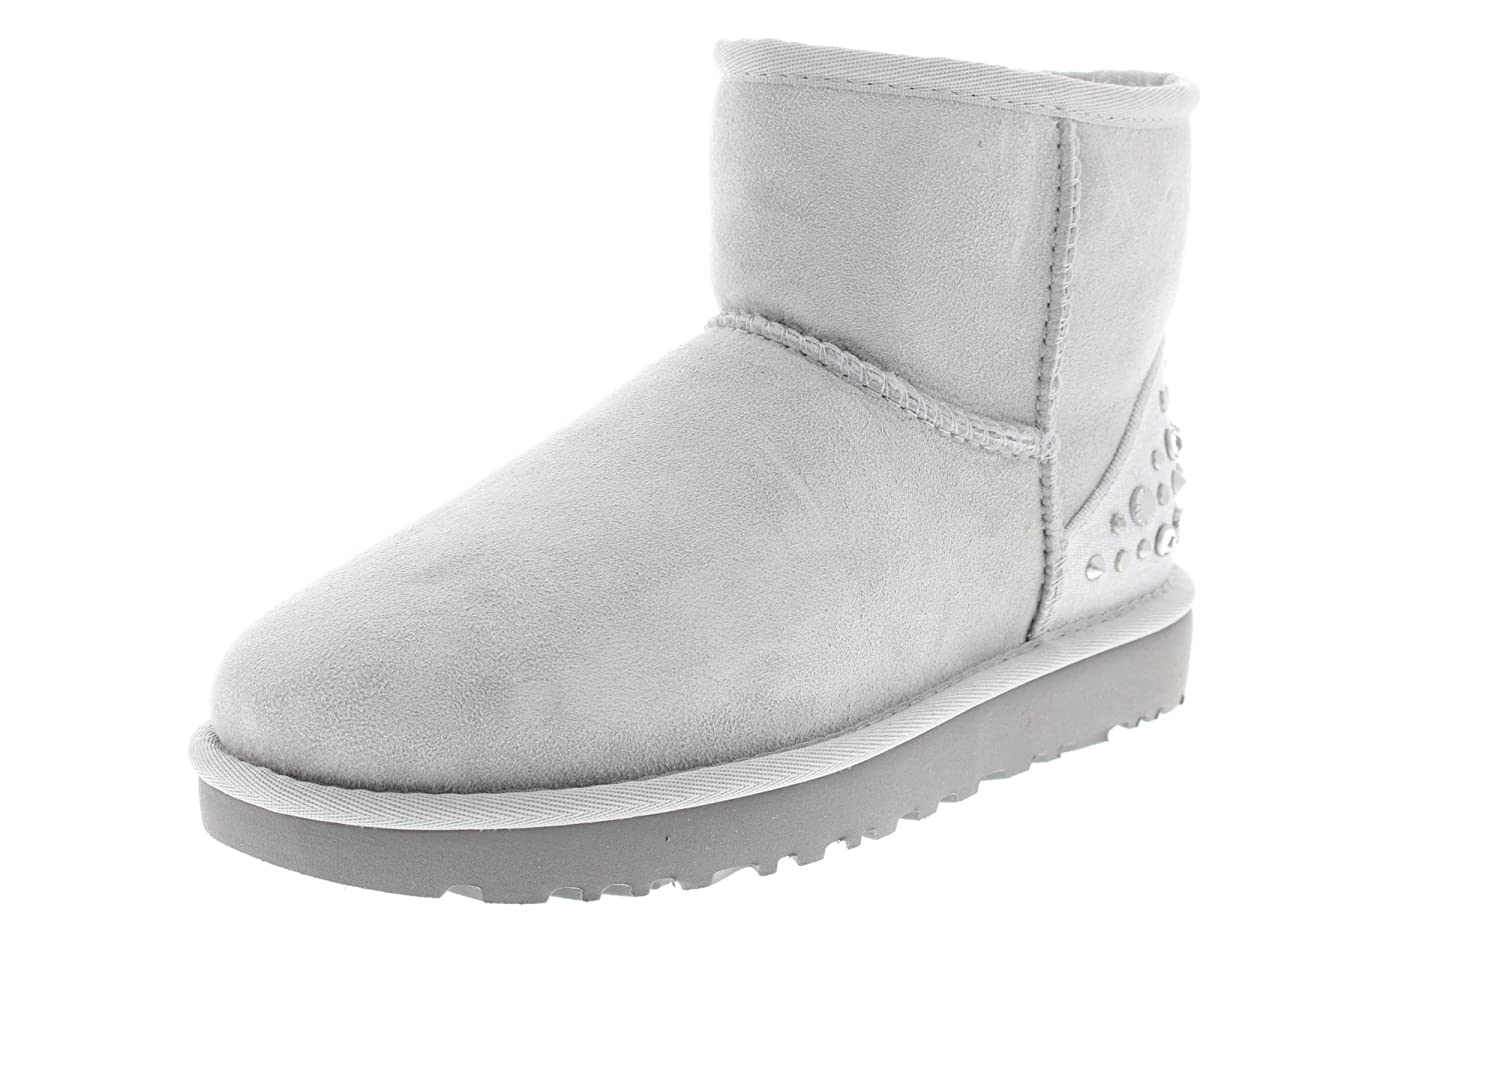 Ugg Style Baby Booties cheap watches mgc